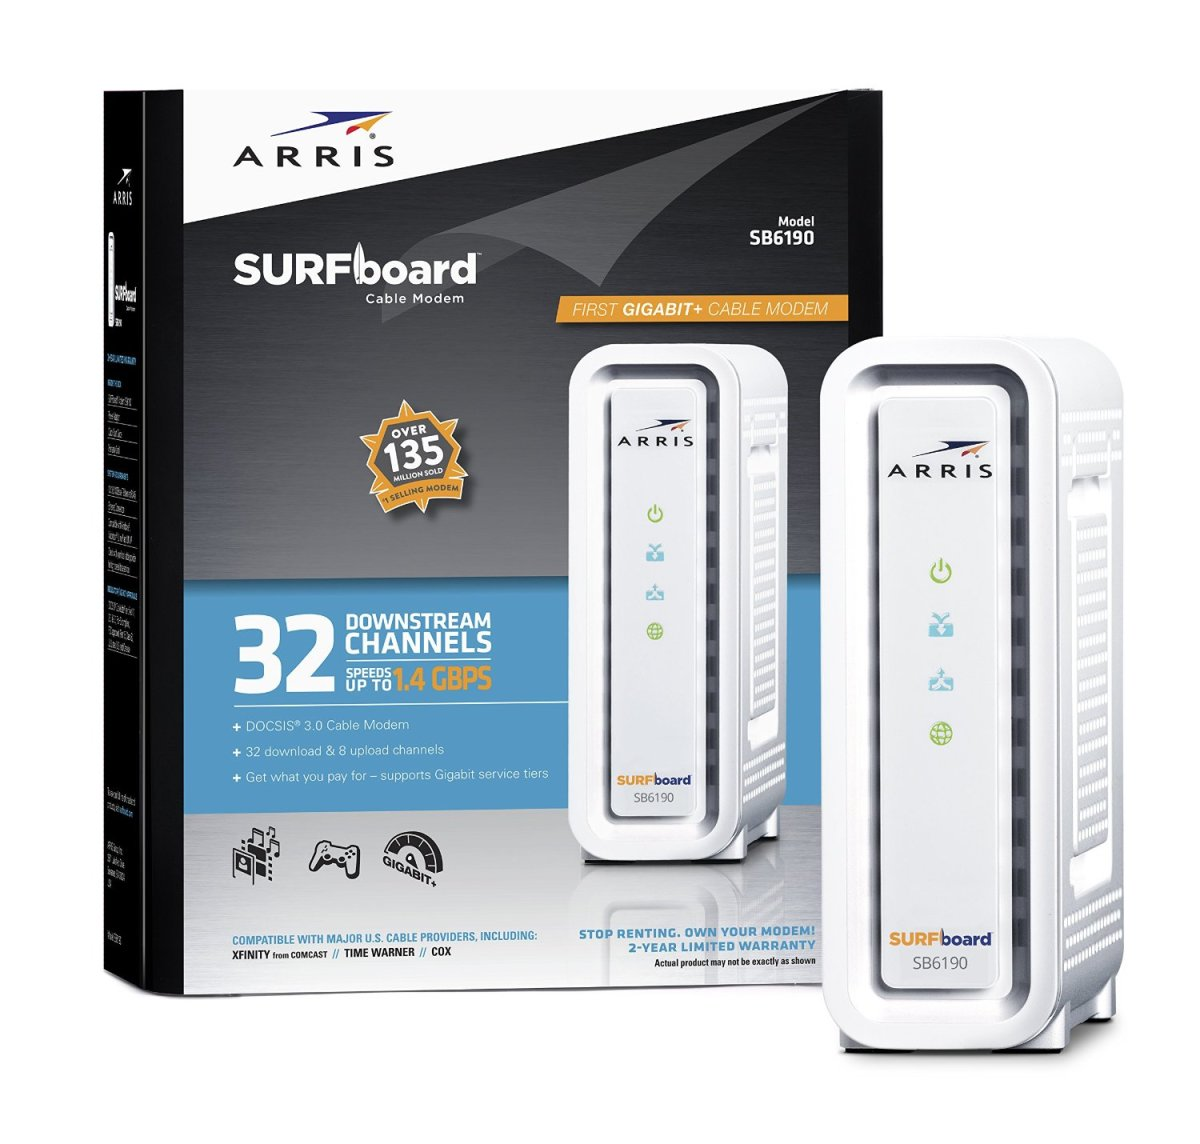 The Arris SB6190 DOCSIS 3.0 is the latest and fastest cable modem in the market today